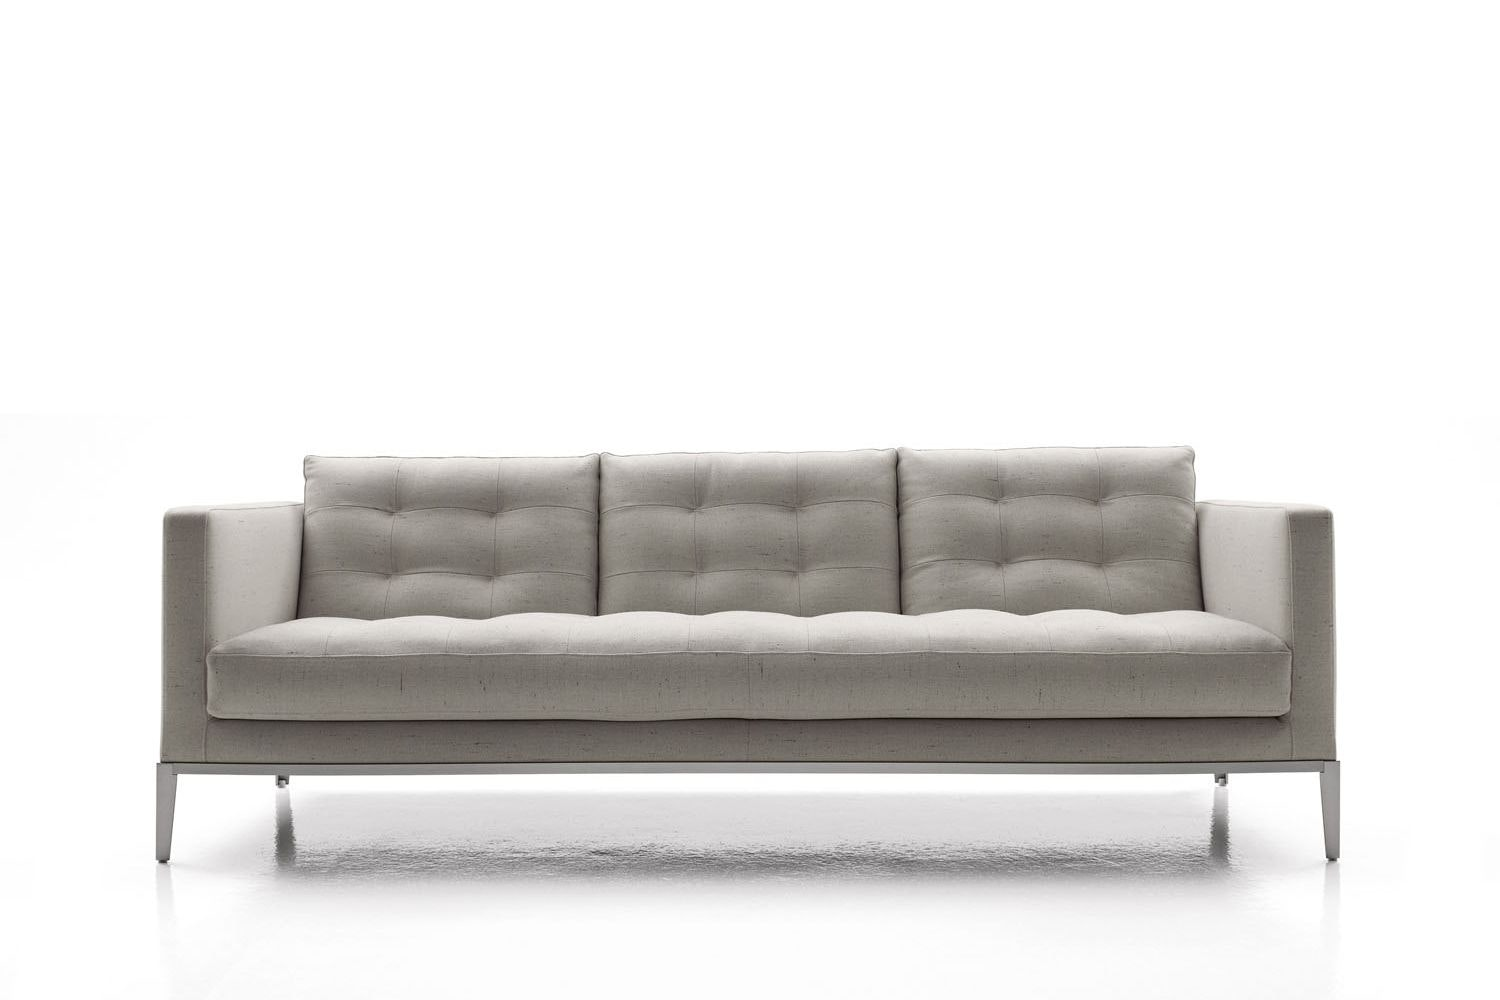 AC Lounge Sofa by Antonio Citterio for Maxalto Space  : BBItaliaProjectsACLOUNGE01 from www.spacefurniture.com.au size 1500 x 1000 jpeg 55kB